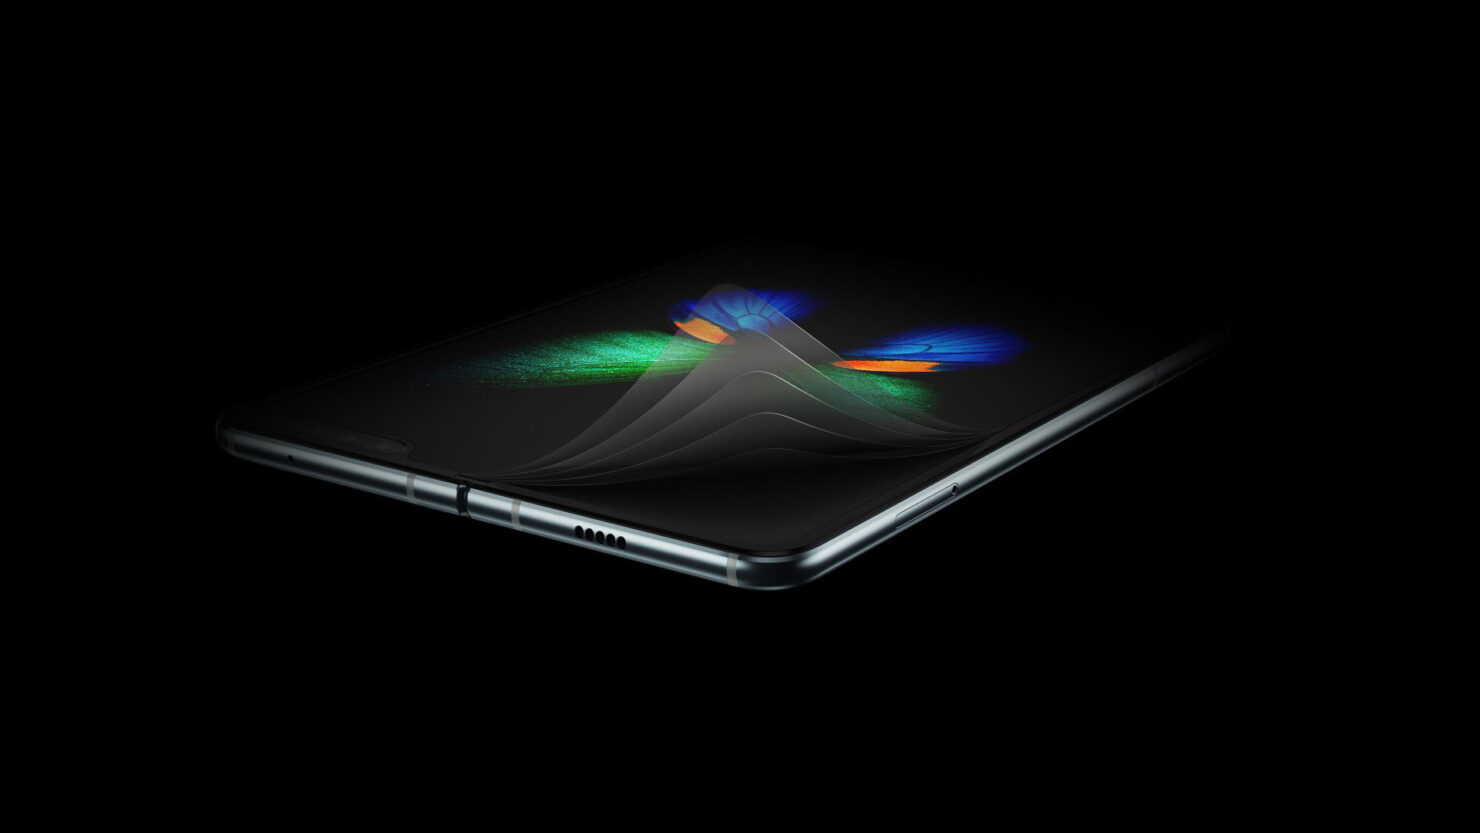 Galaxy Fold 2 Design May Include a Slightly Hidden Hinge Assembly